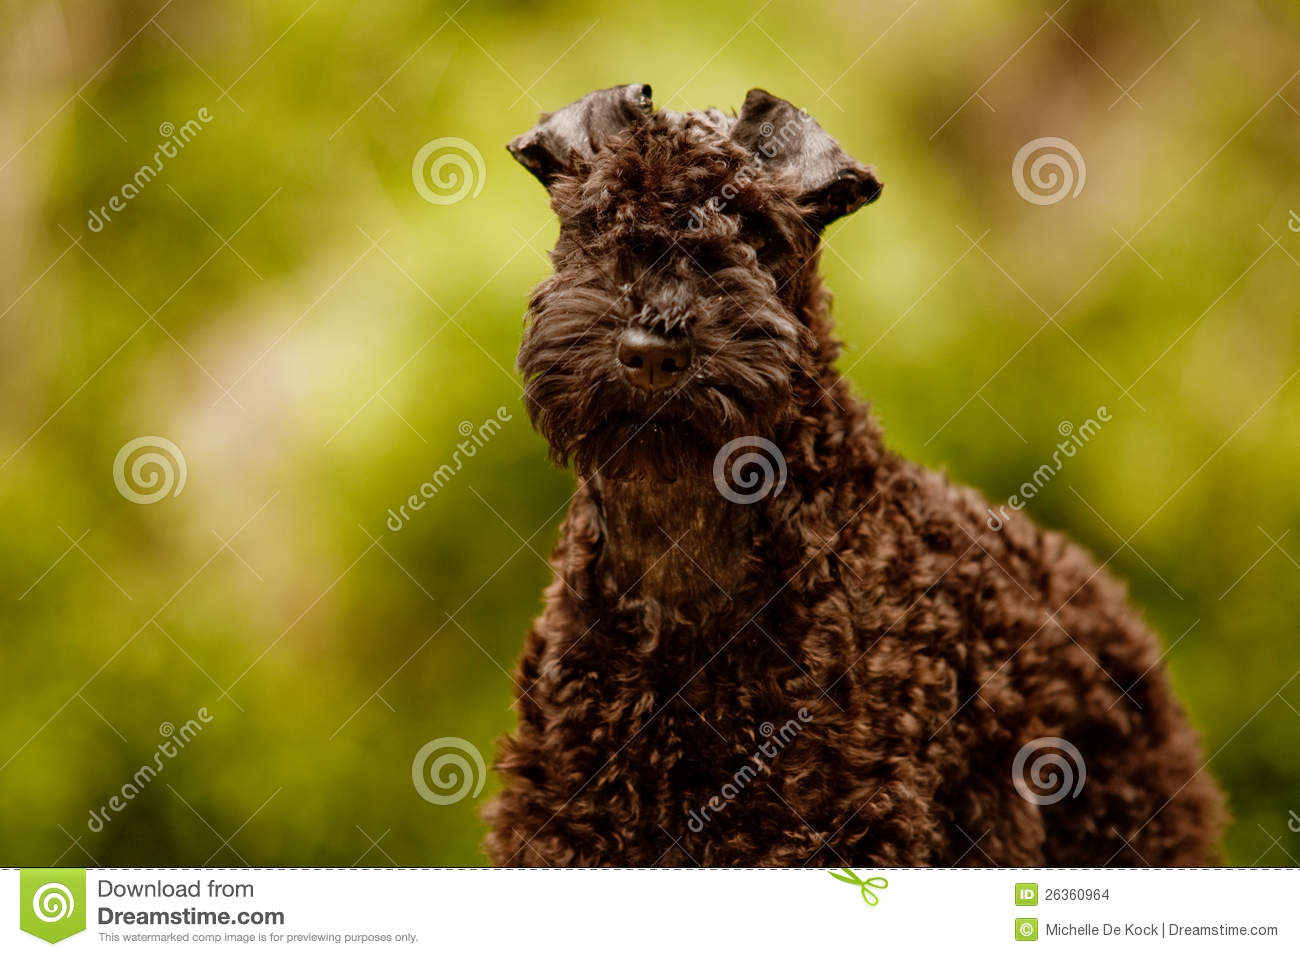 Download Kerry-Blauterrierwelpe stockfoto. Bild von tier, blau - 26360964